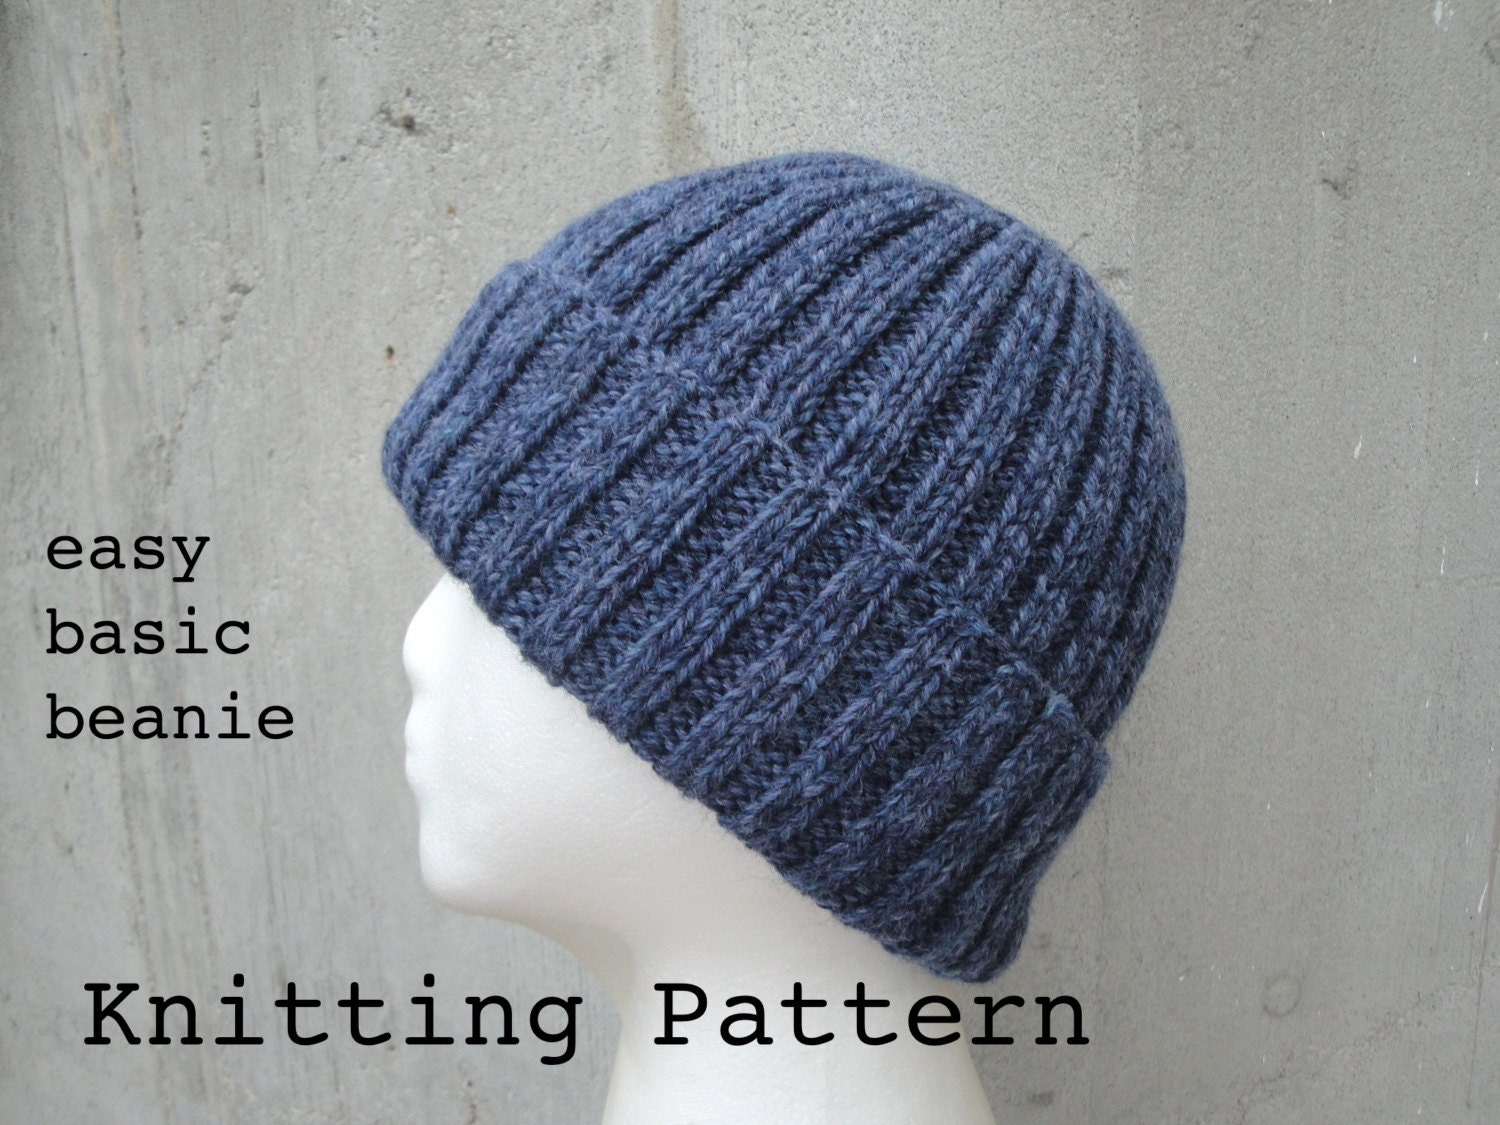 Knitting Pattern Basic Beanie : Girlpowers Basic Beanie PDF Knitting Pattern Easy by ...